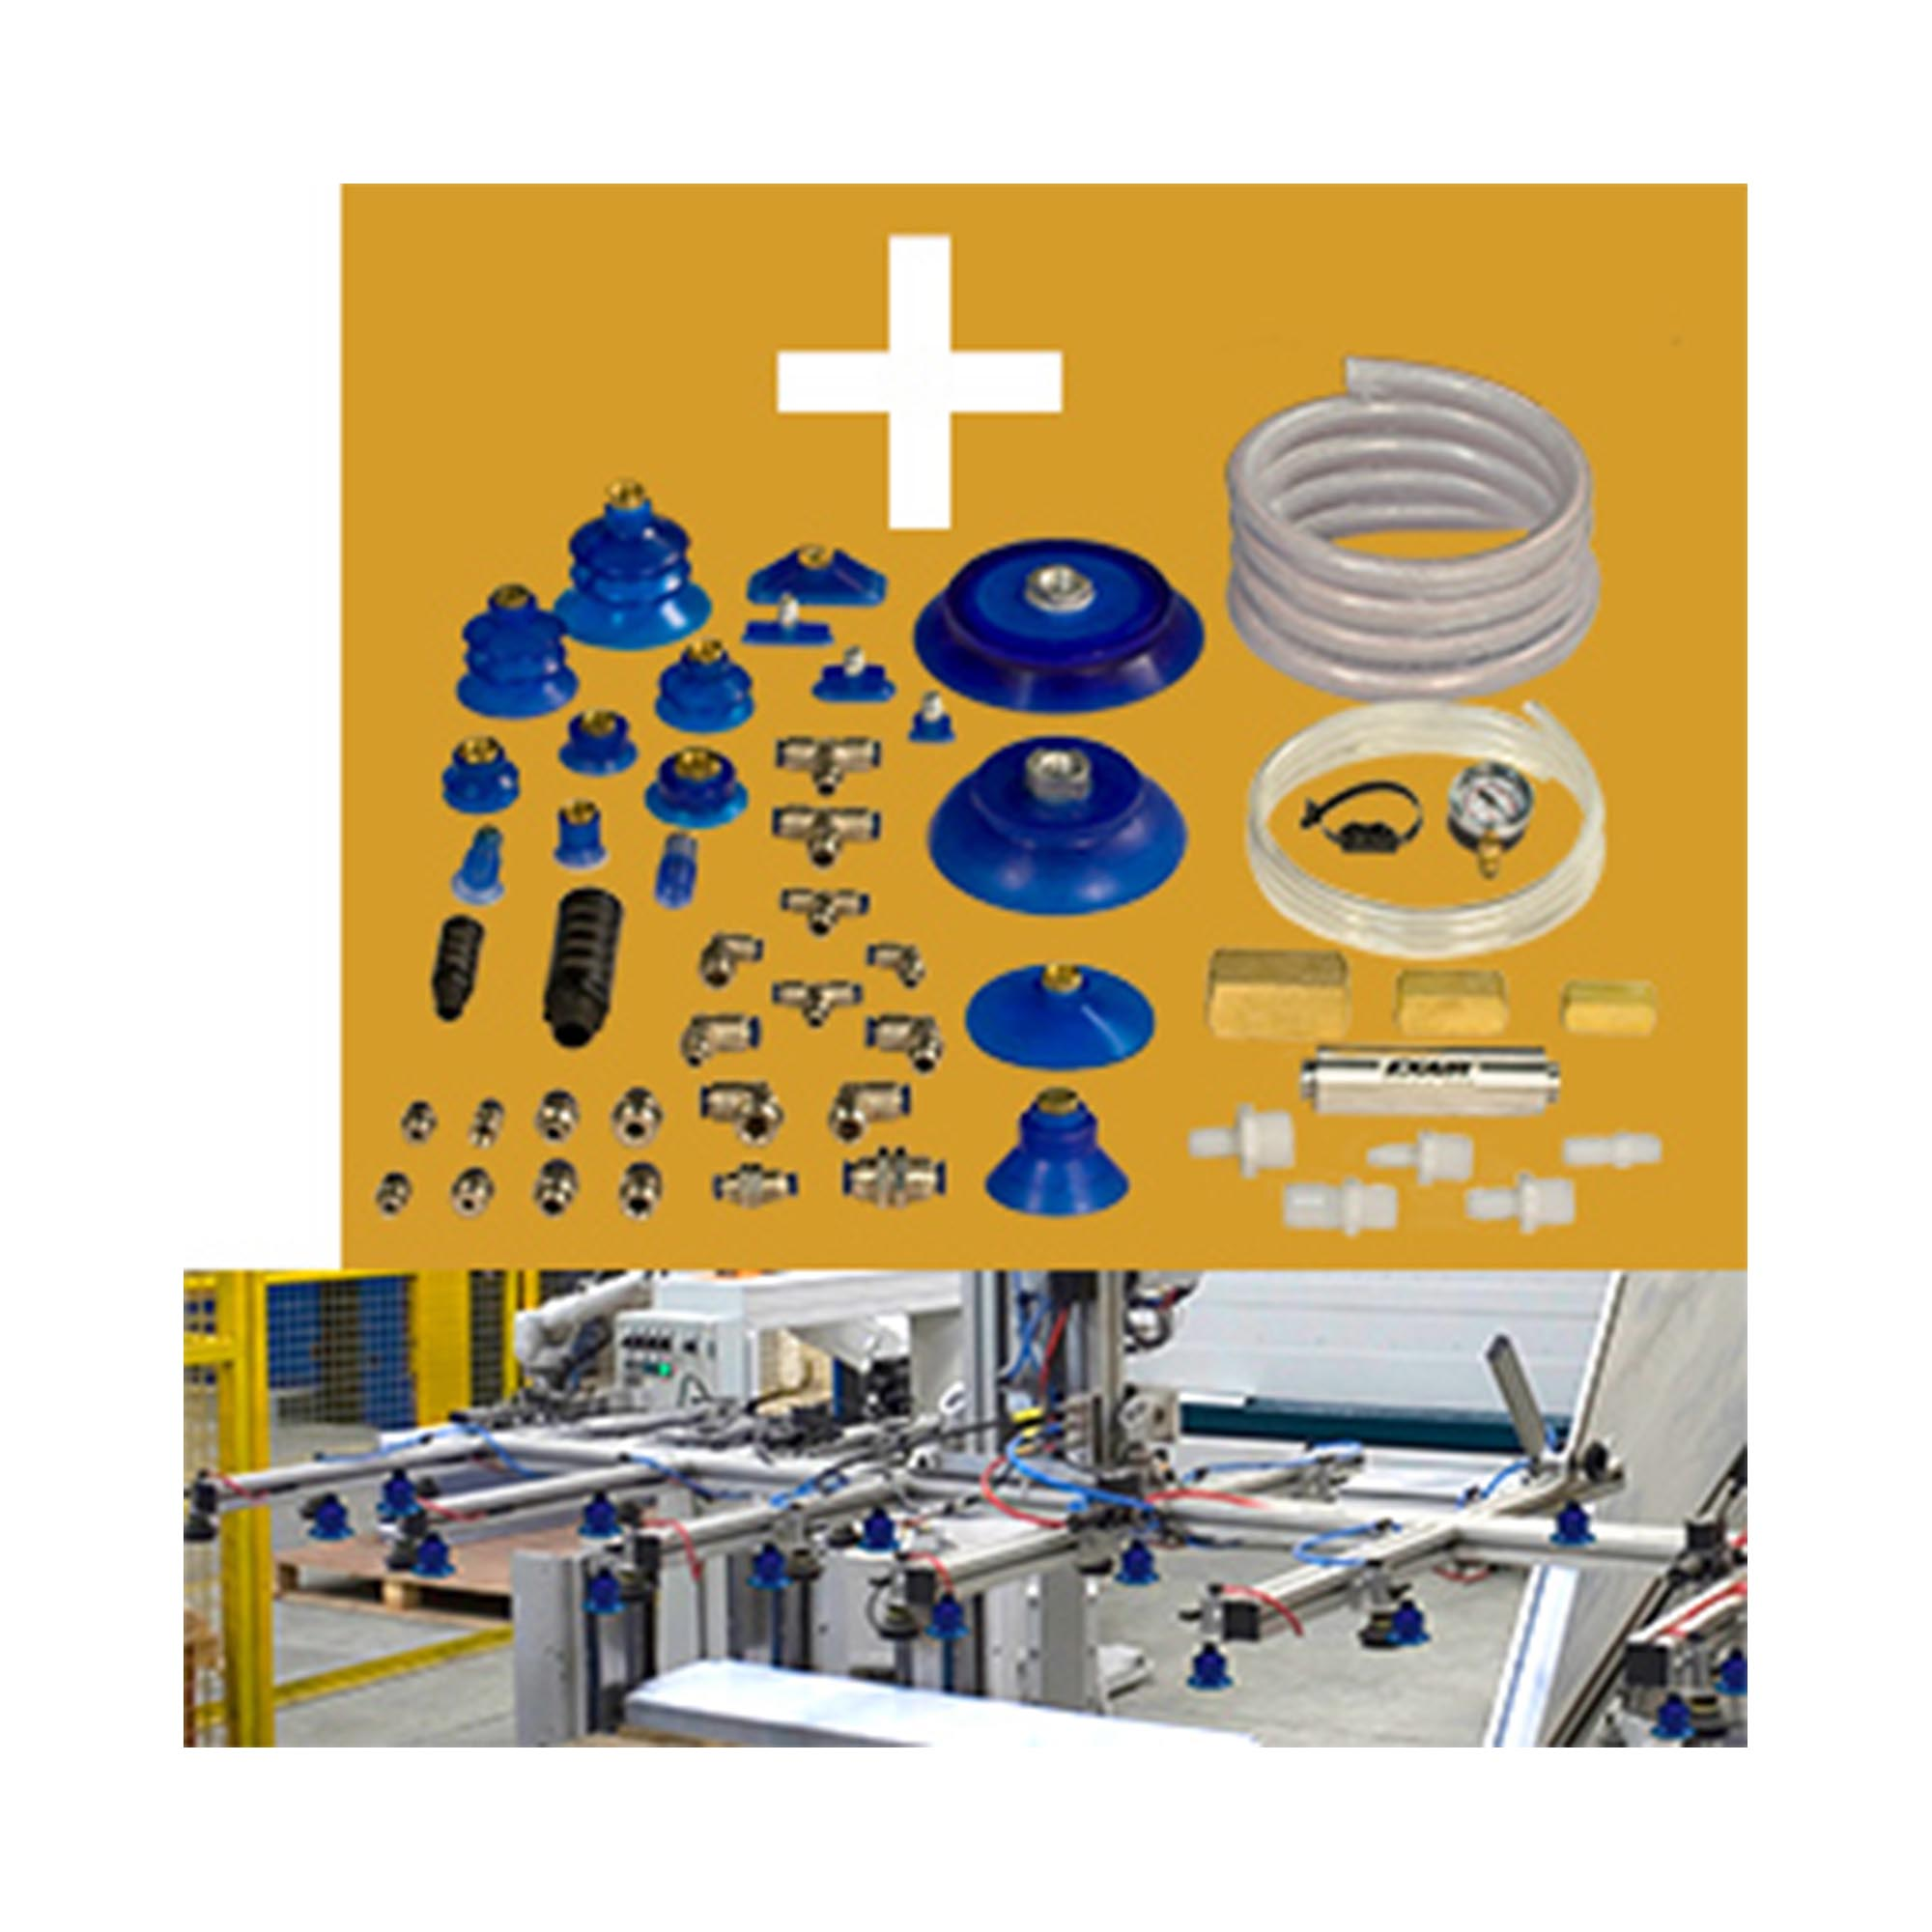 Many accessories are available for E-Vacs including suction cups, fittings and vacuum tube.